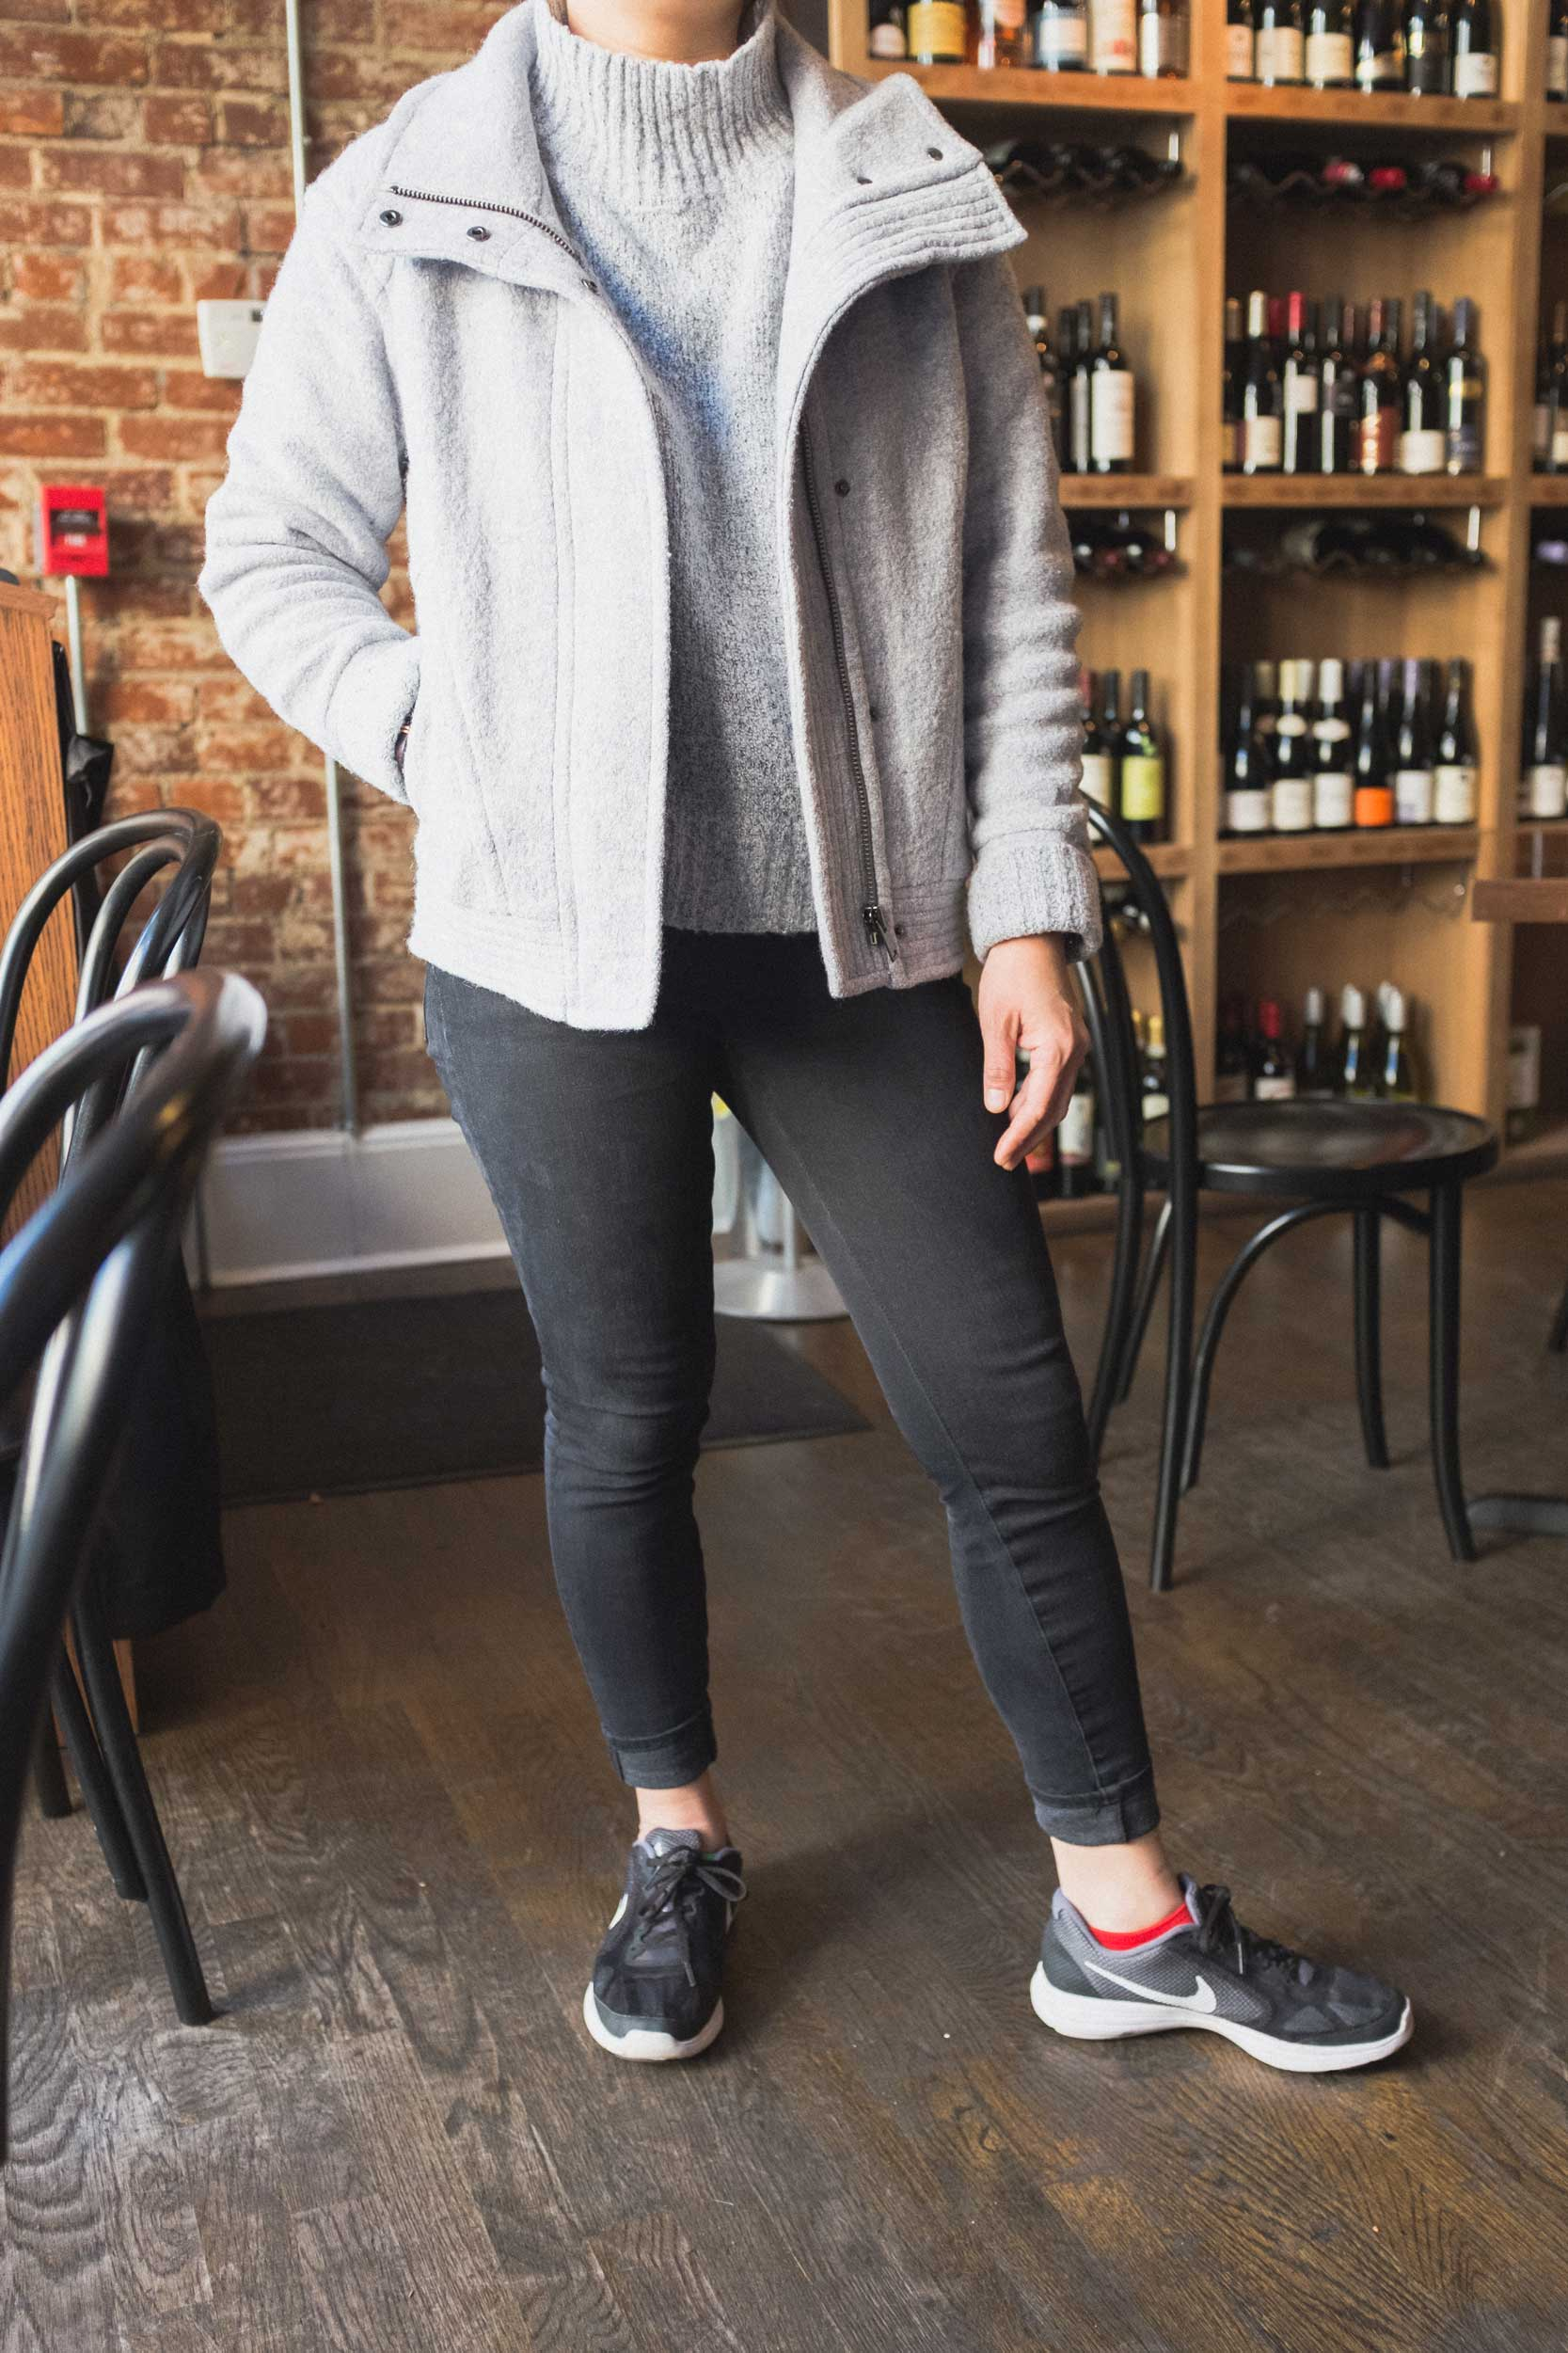 My friend Un-Jin with the perfect amount of color popping off those socks. Hanging out in our neighborhood Wine Bar + Coffee Shop. Yeah, it's as magical as it sounds.